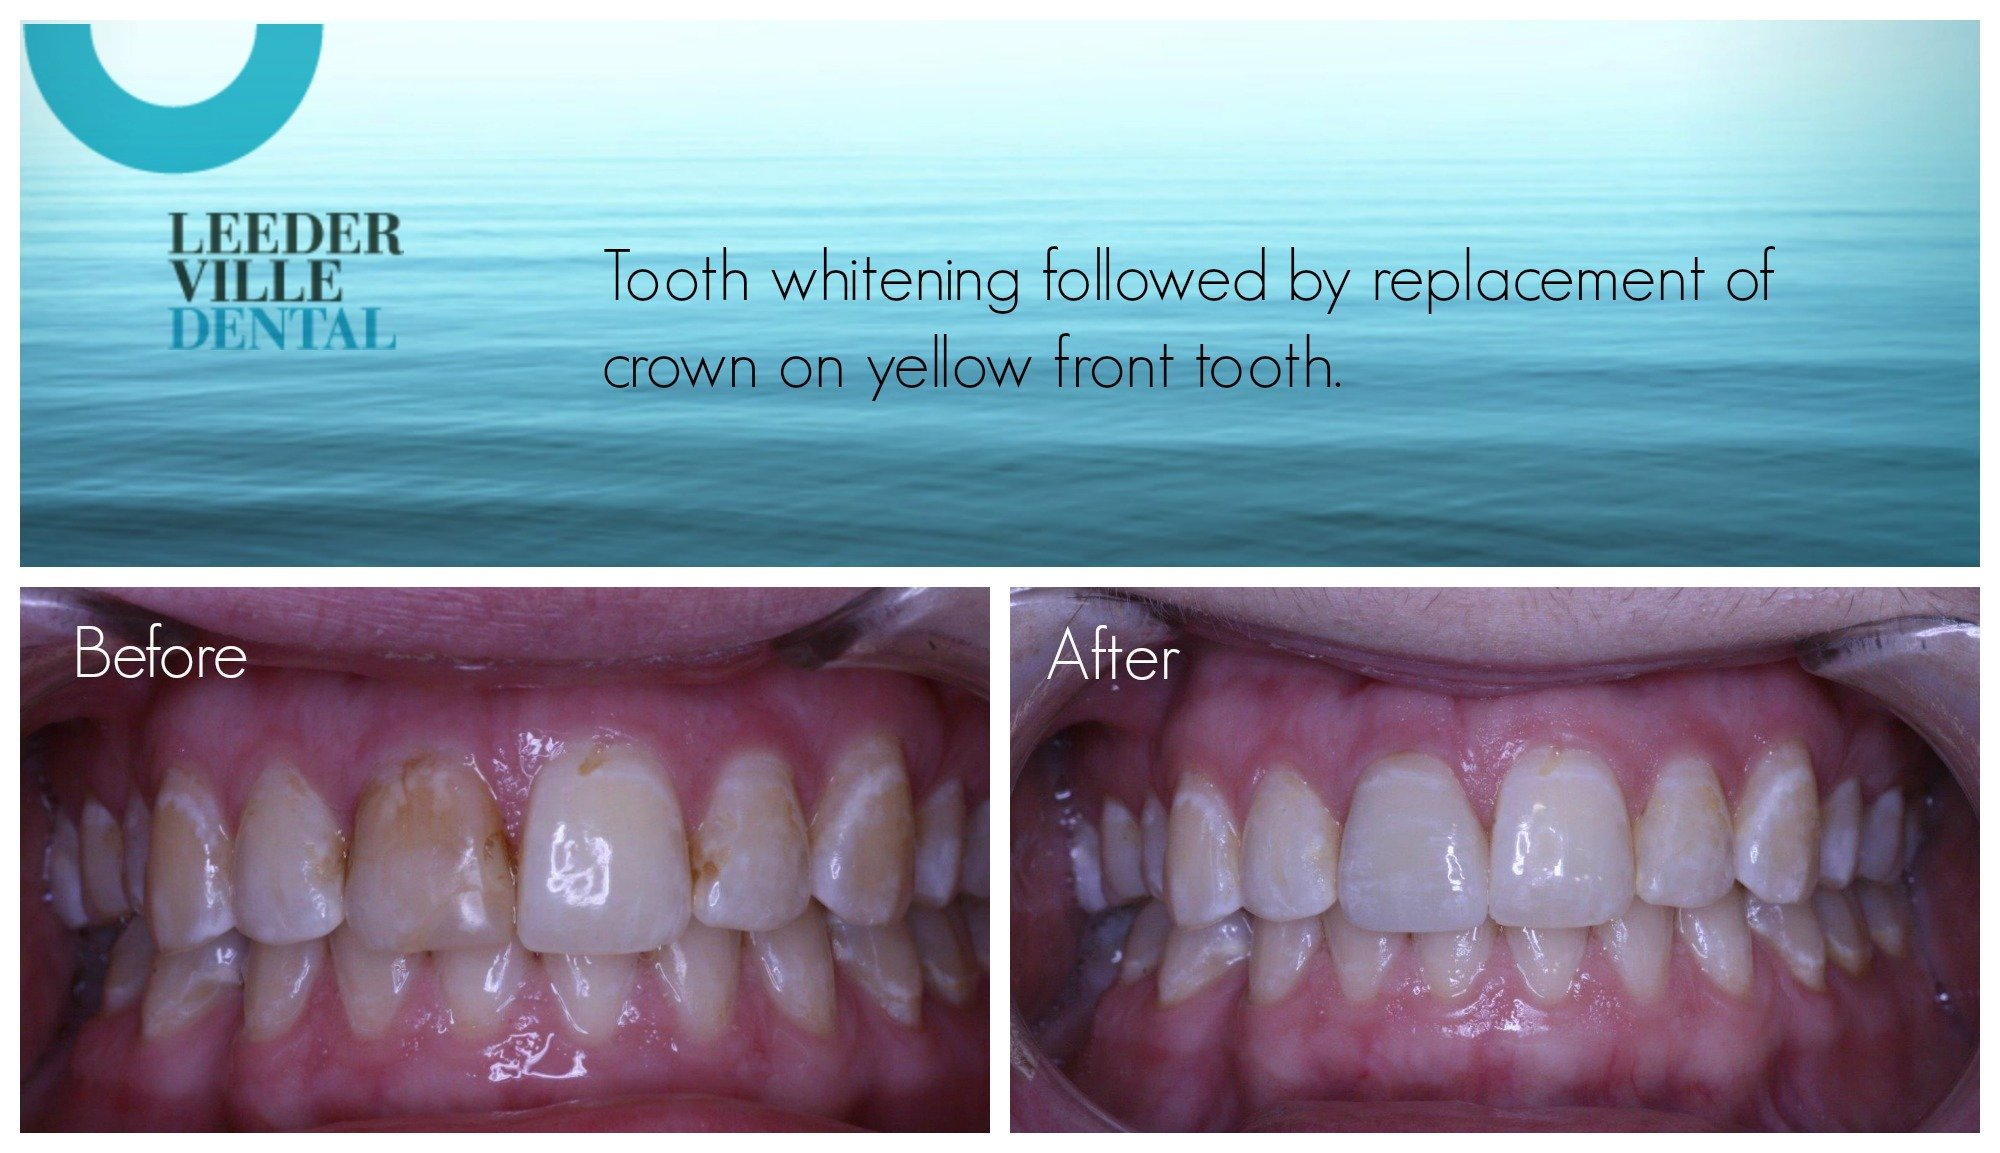 tooth whitening followed by replacement of yellow front tooth crown